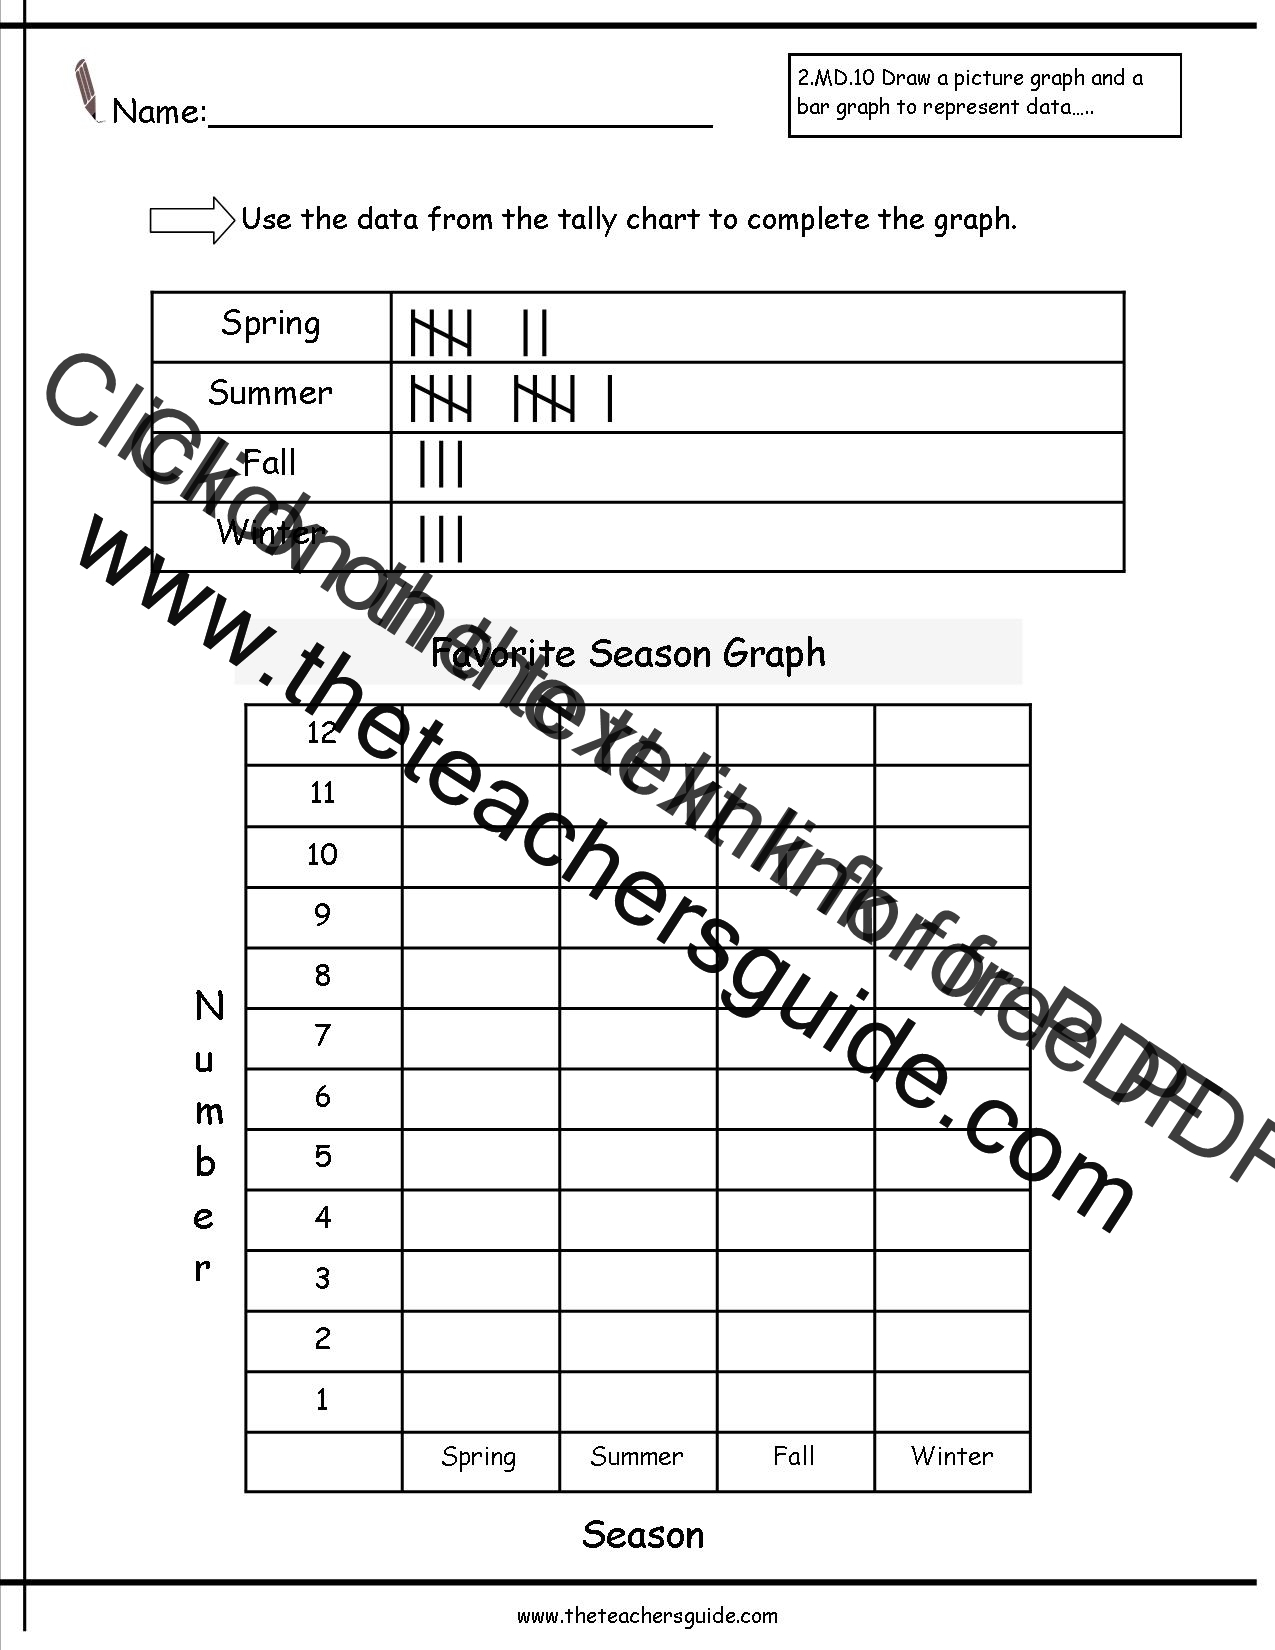 Free Worksheet Charts And Graphs Worksheets bar graph templates blank charts by rachyben teaching reading and creating graphs worksheets from the teacher 39 s guide